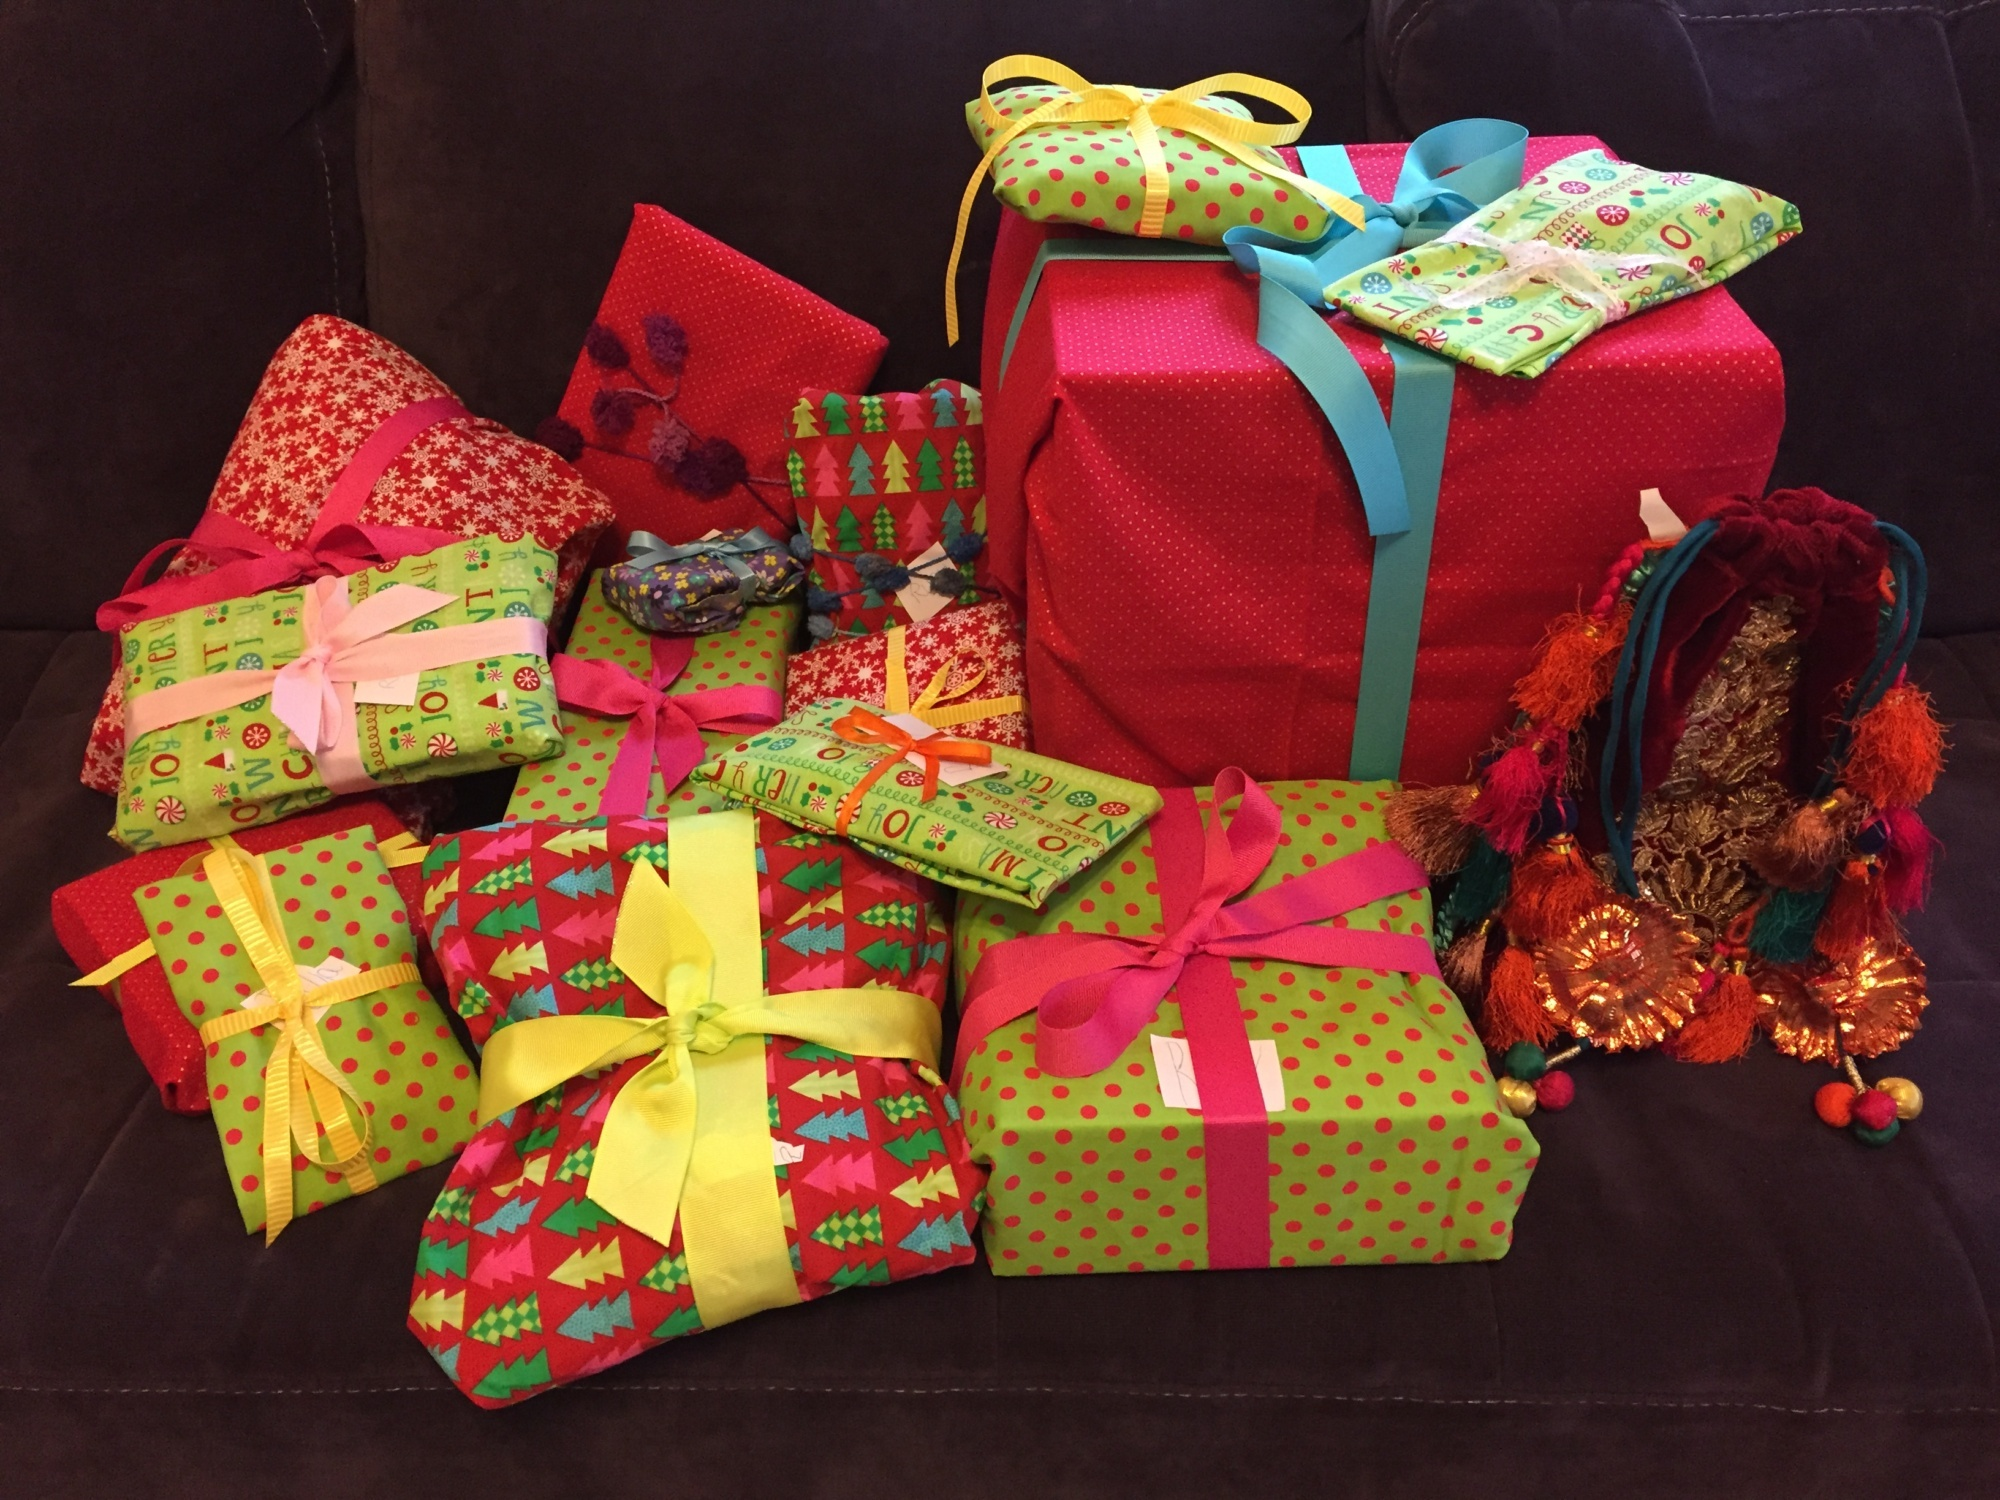 Image of presents wrapped in cloth